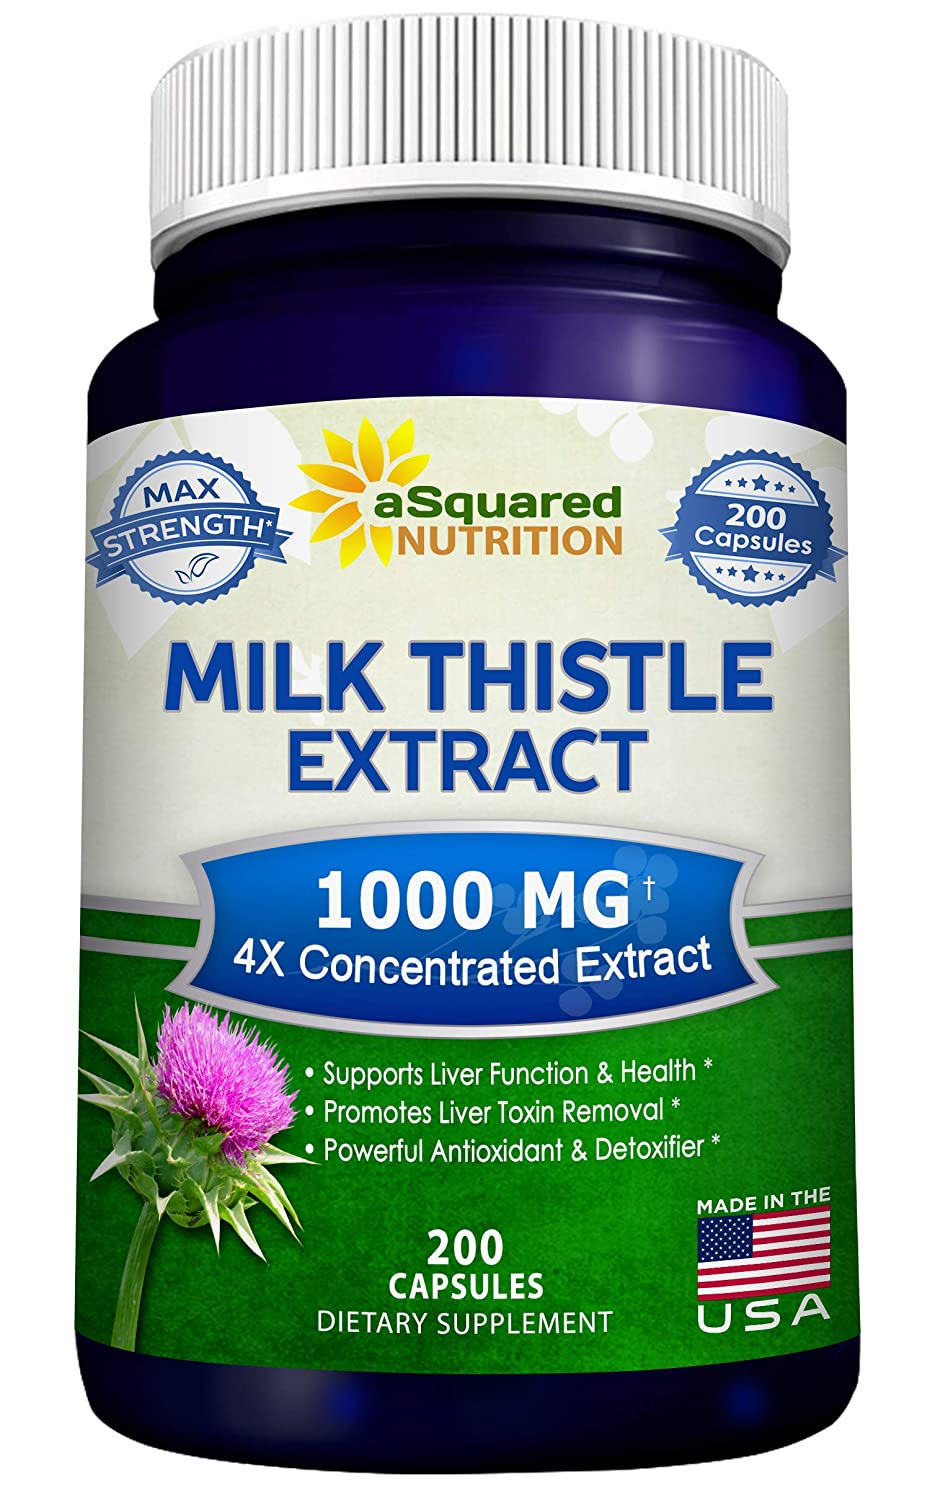 Pure Milk Thistle Supplement 1000mg – 200 Capsules, Max Strength 4X Concentrated Extract 4 1 Milk Thistle Seed Powder Herb Pills, 1000 mg Silymarin Extract for Liver Support, Cleanse, Detox Health